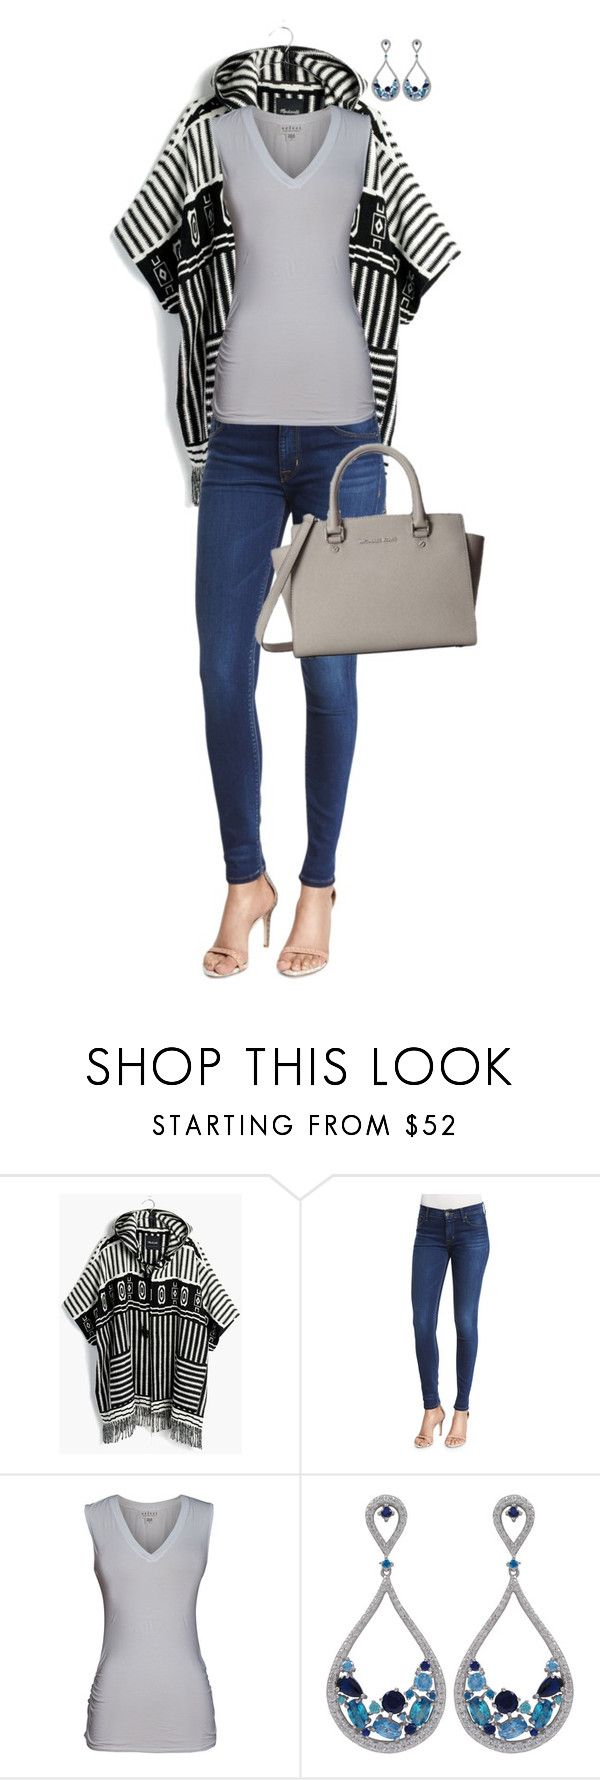 """""""Untitled #7018"""" by lisa-holt ❤ liked on Polyvore featuring Madewell, Hudson, Velvet by Graham & Spencer, Luxiro and Michael Kors"""